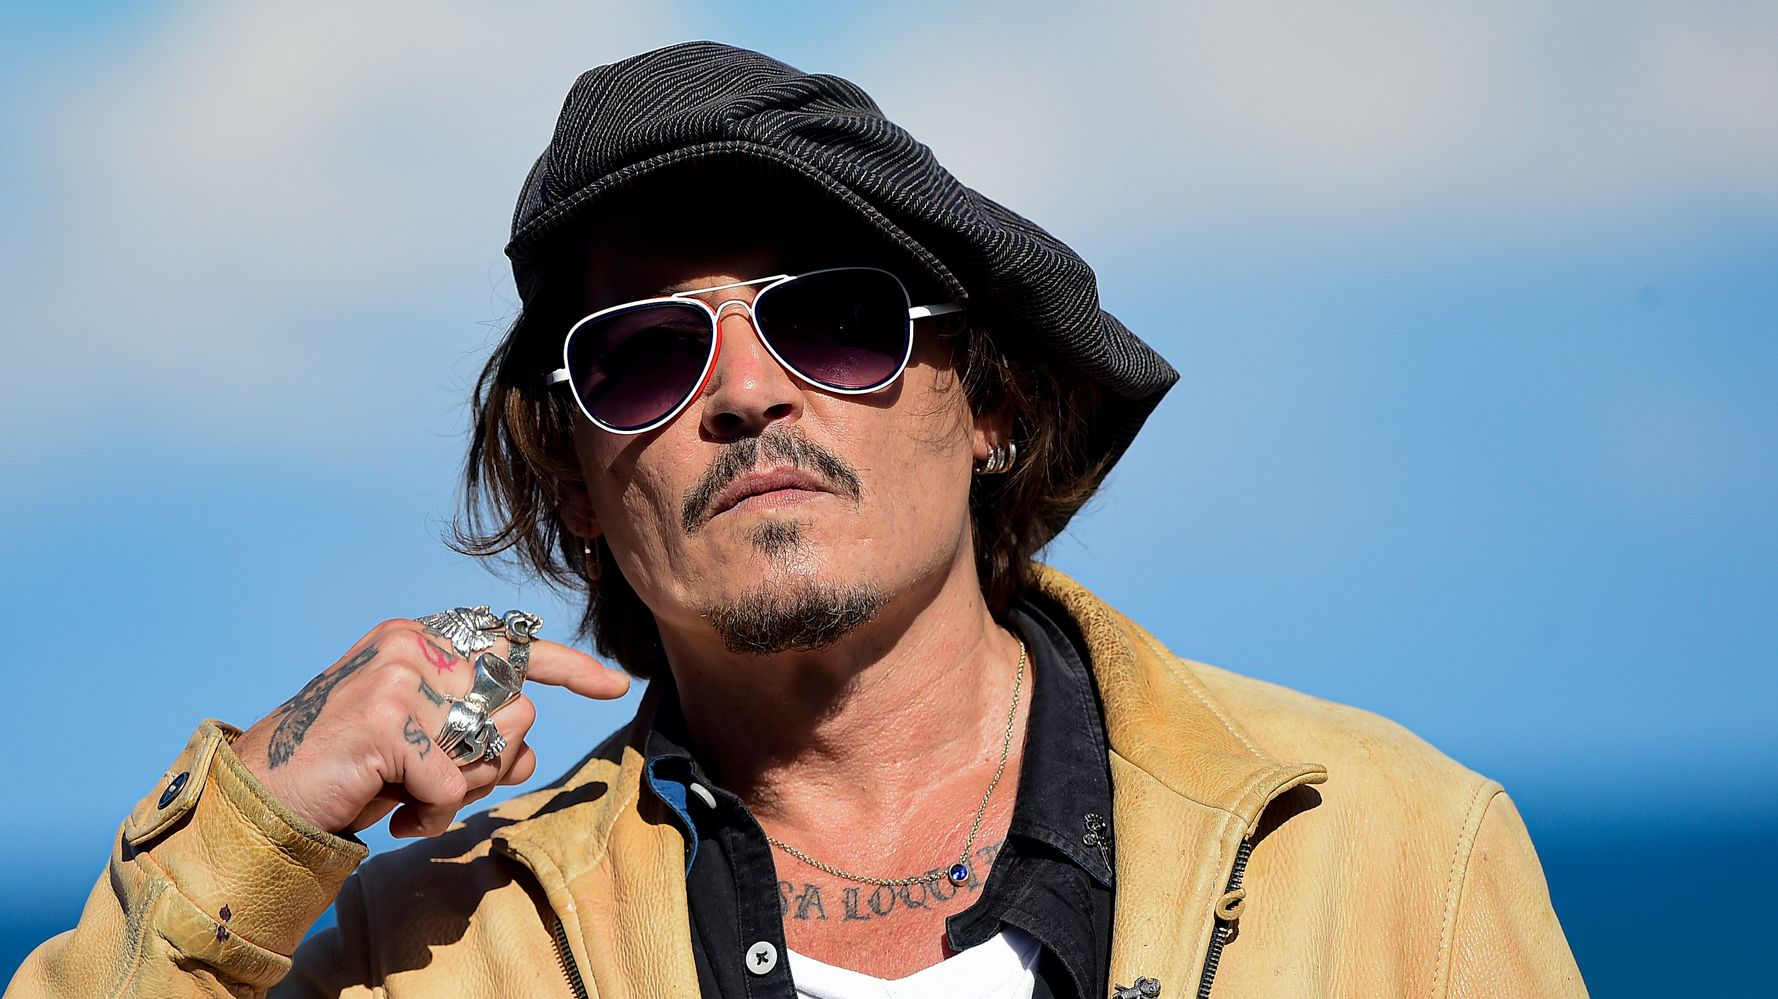 UK Judge Denies Johnny Depp Permission To Appeal Libel Ruling